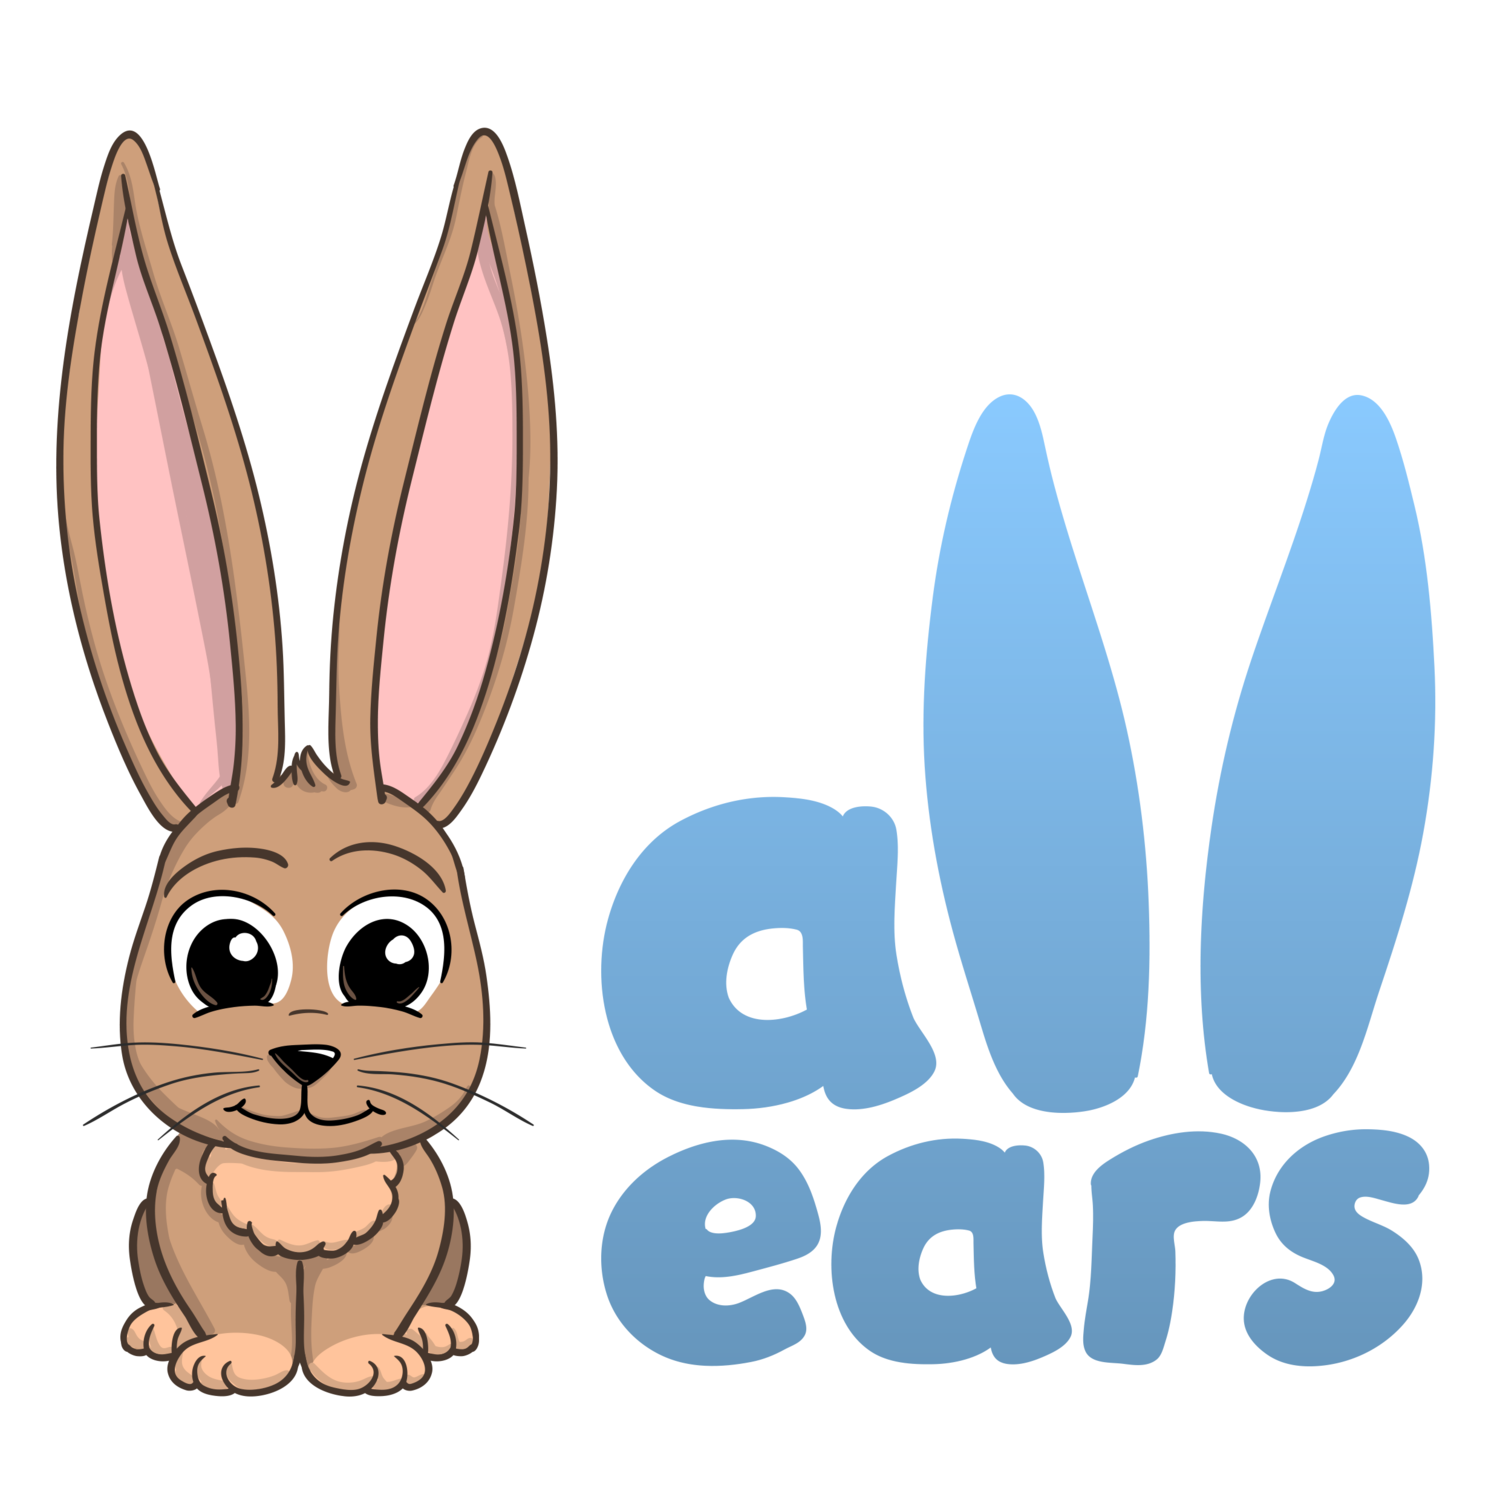 All Ears - Bunny & Rabbit Welfare Podcast - The All Ears Podcast (Bunnies & Rabbit Welfare)